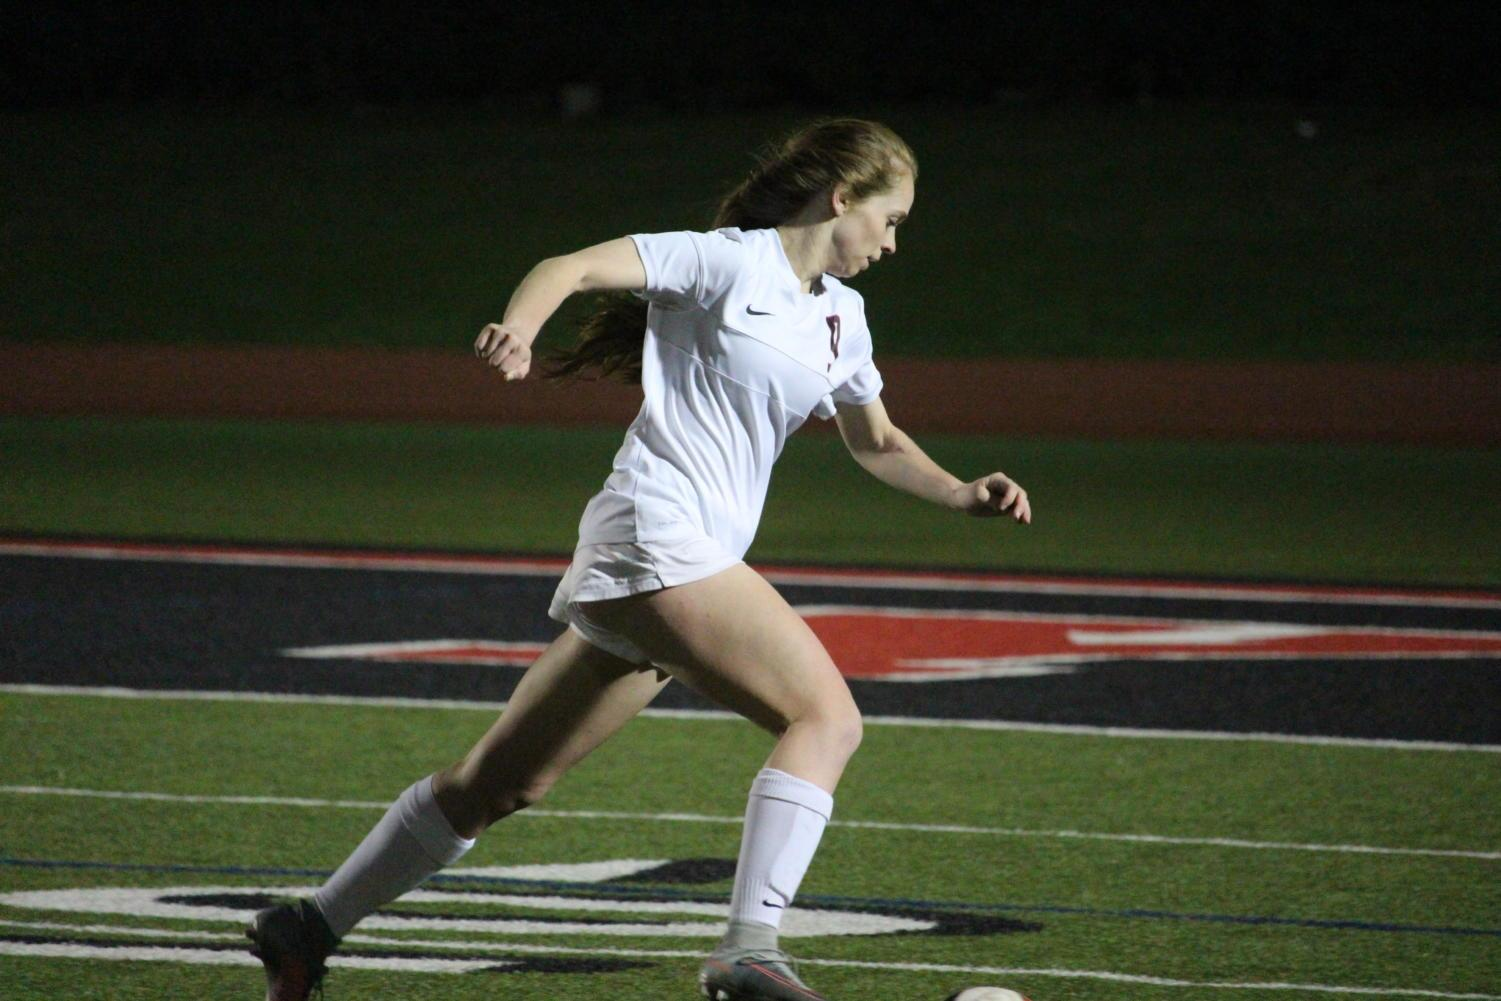 Coppell+High+School+senior+Rebecca+Watley+runs+with+the+ball+during+the+first+half+of+Tuesday+nights+home+game+at+Buddy+Echols+Field.+The+varsity+girls+soccer+team+played+against+WT+White+taking+the+win+with+a+score+of+5-1.